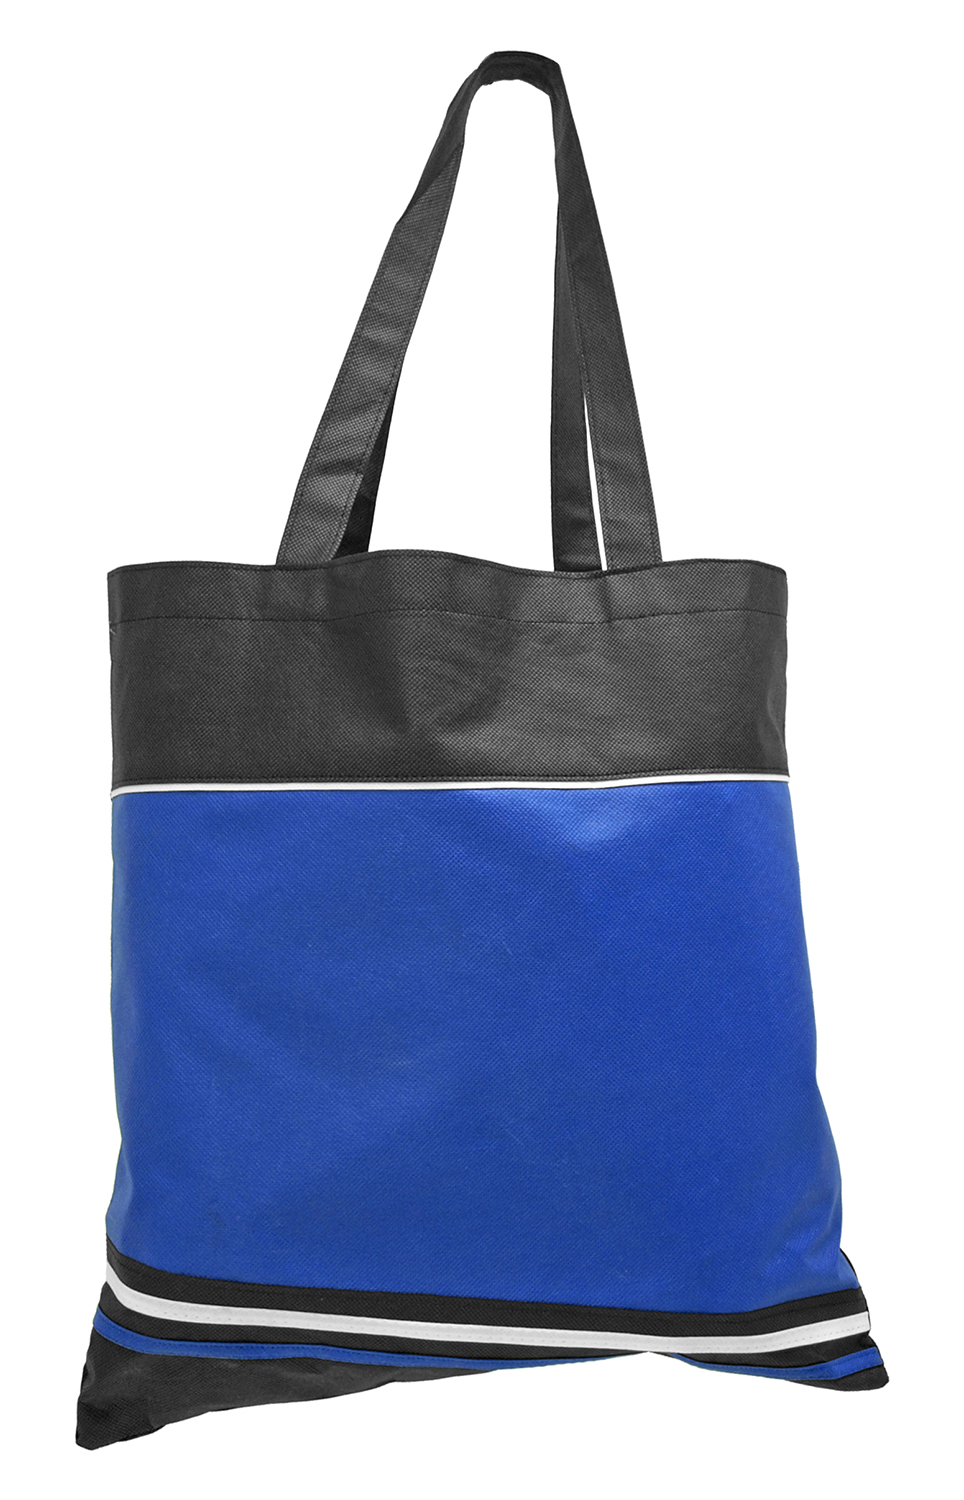 Grocery Shopping Tote Bag - Blue and Black